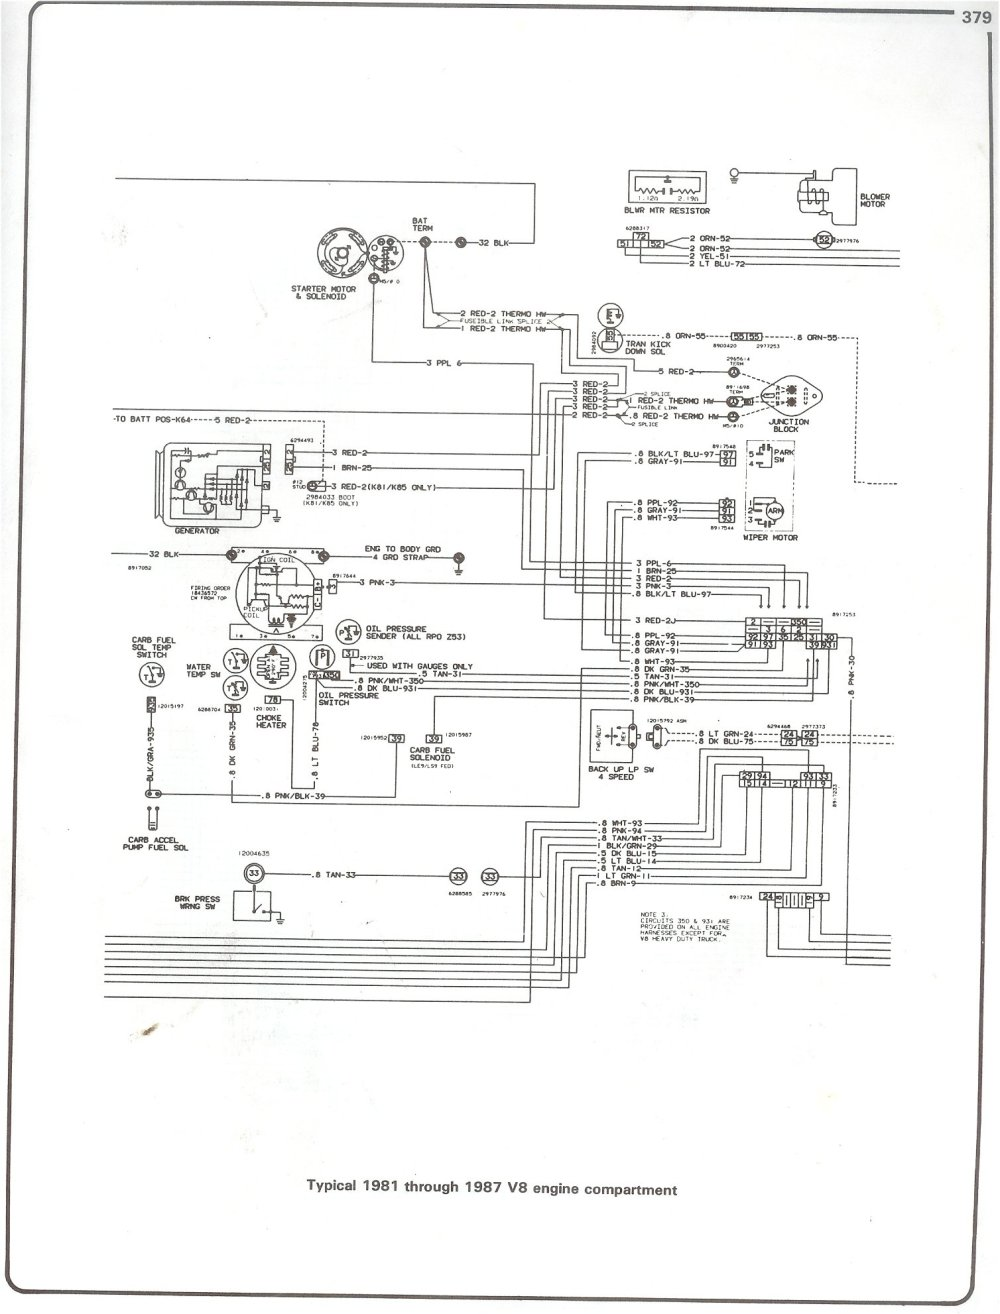 medium resolution of 86 suburban wiring diagram detailed schematics diagram rh lelandlutheran com 1988 gmc truck wiring diagram gmc